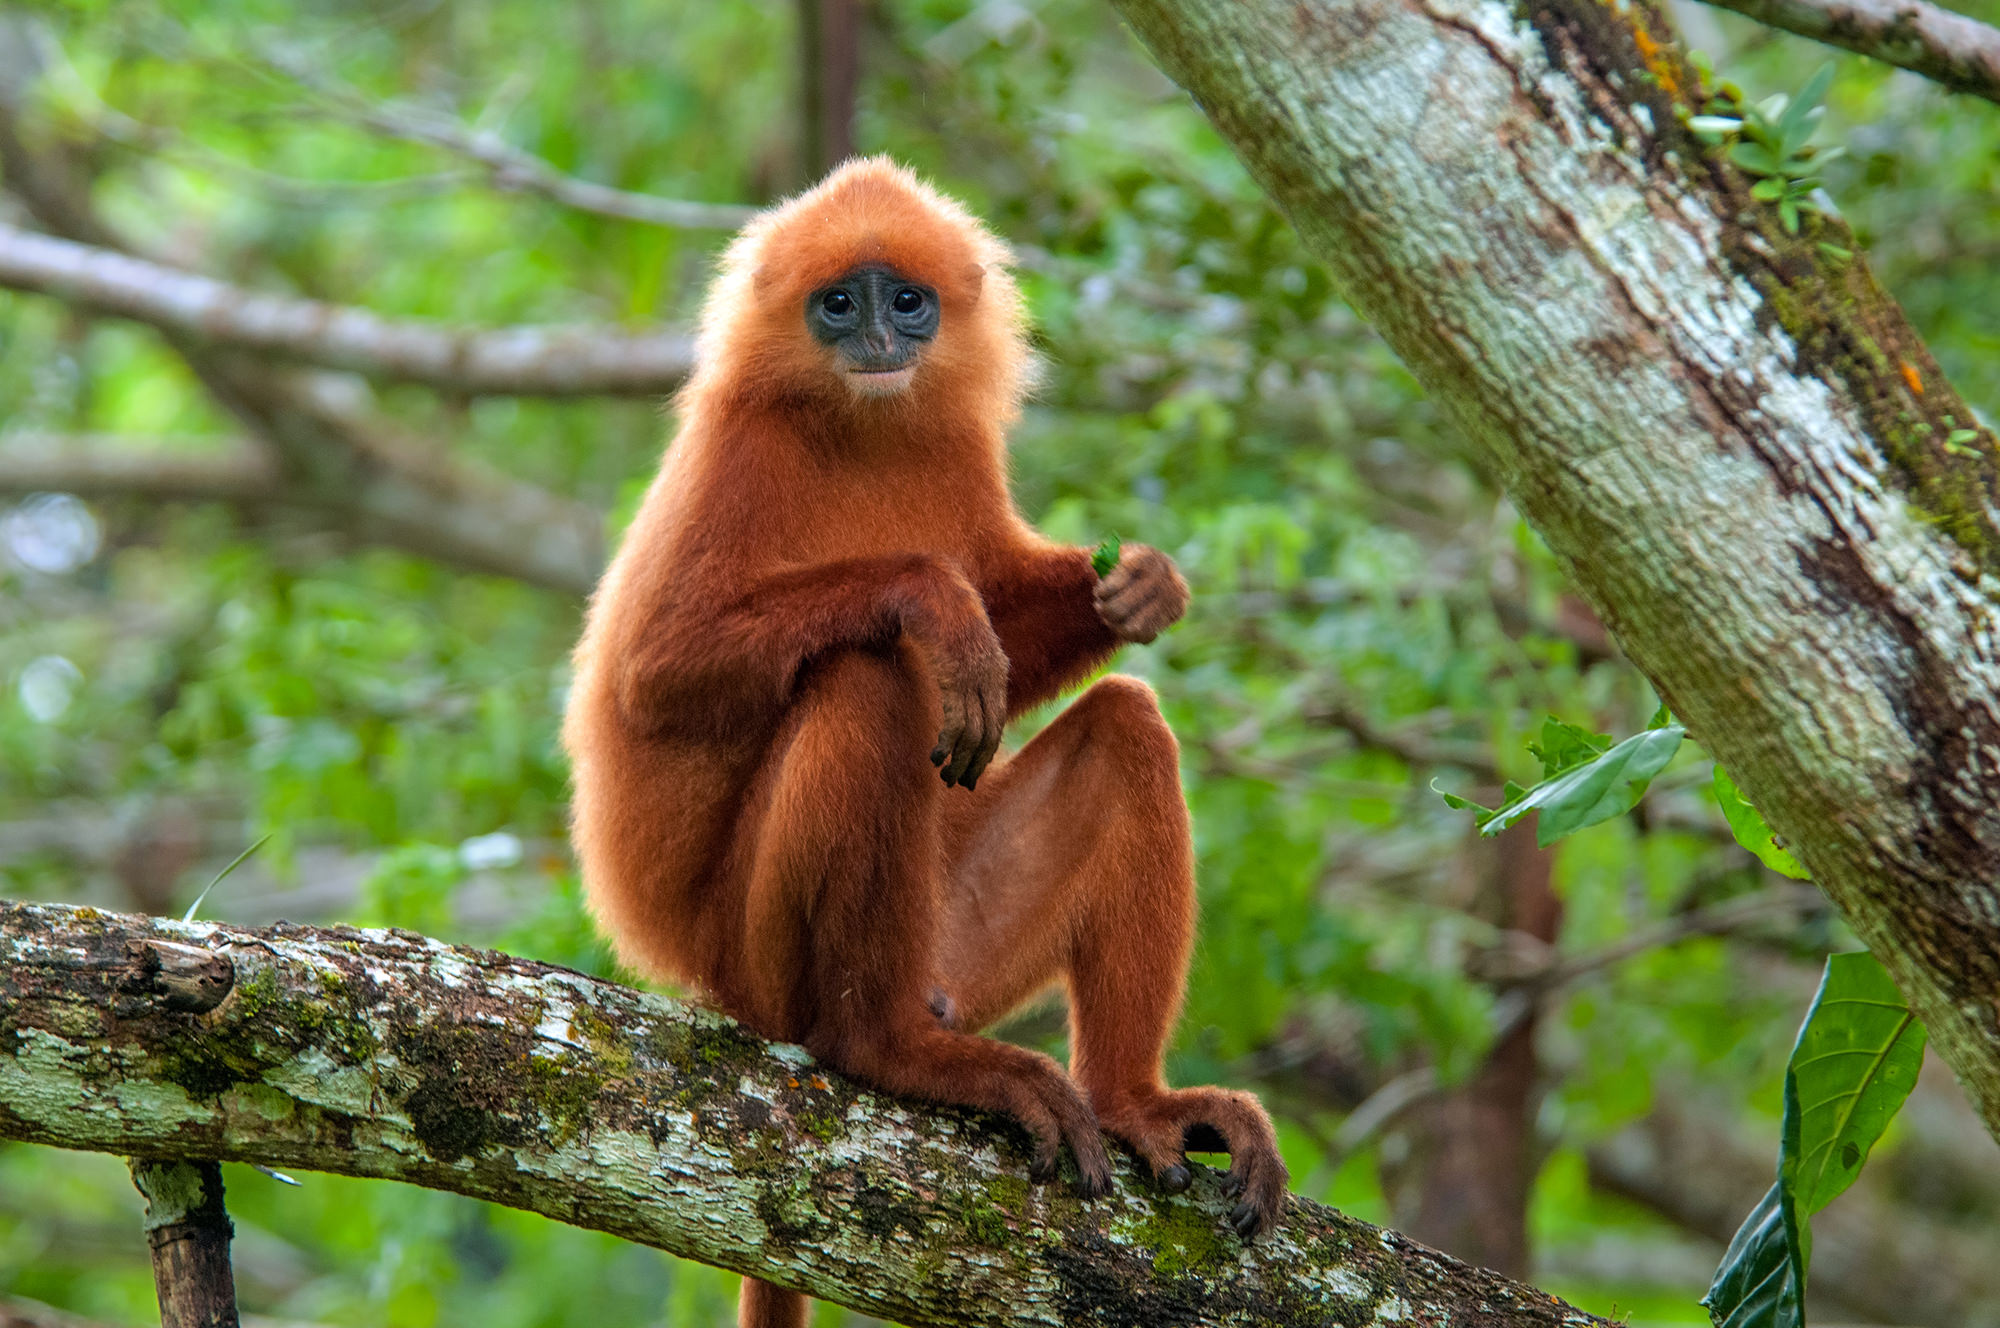 Maroon langur at Danum Valley, Borneo